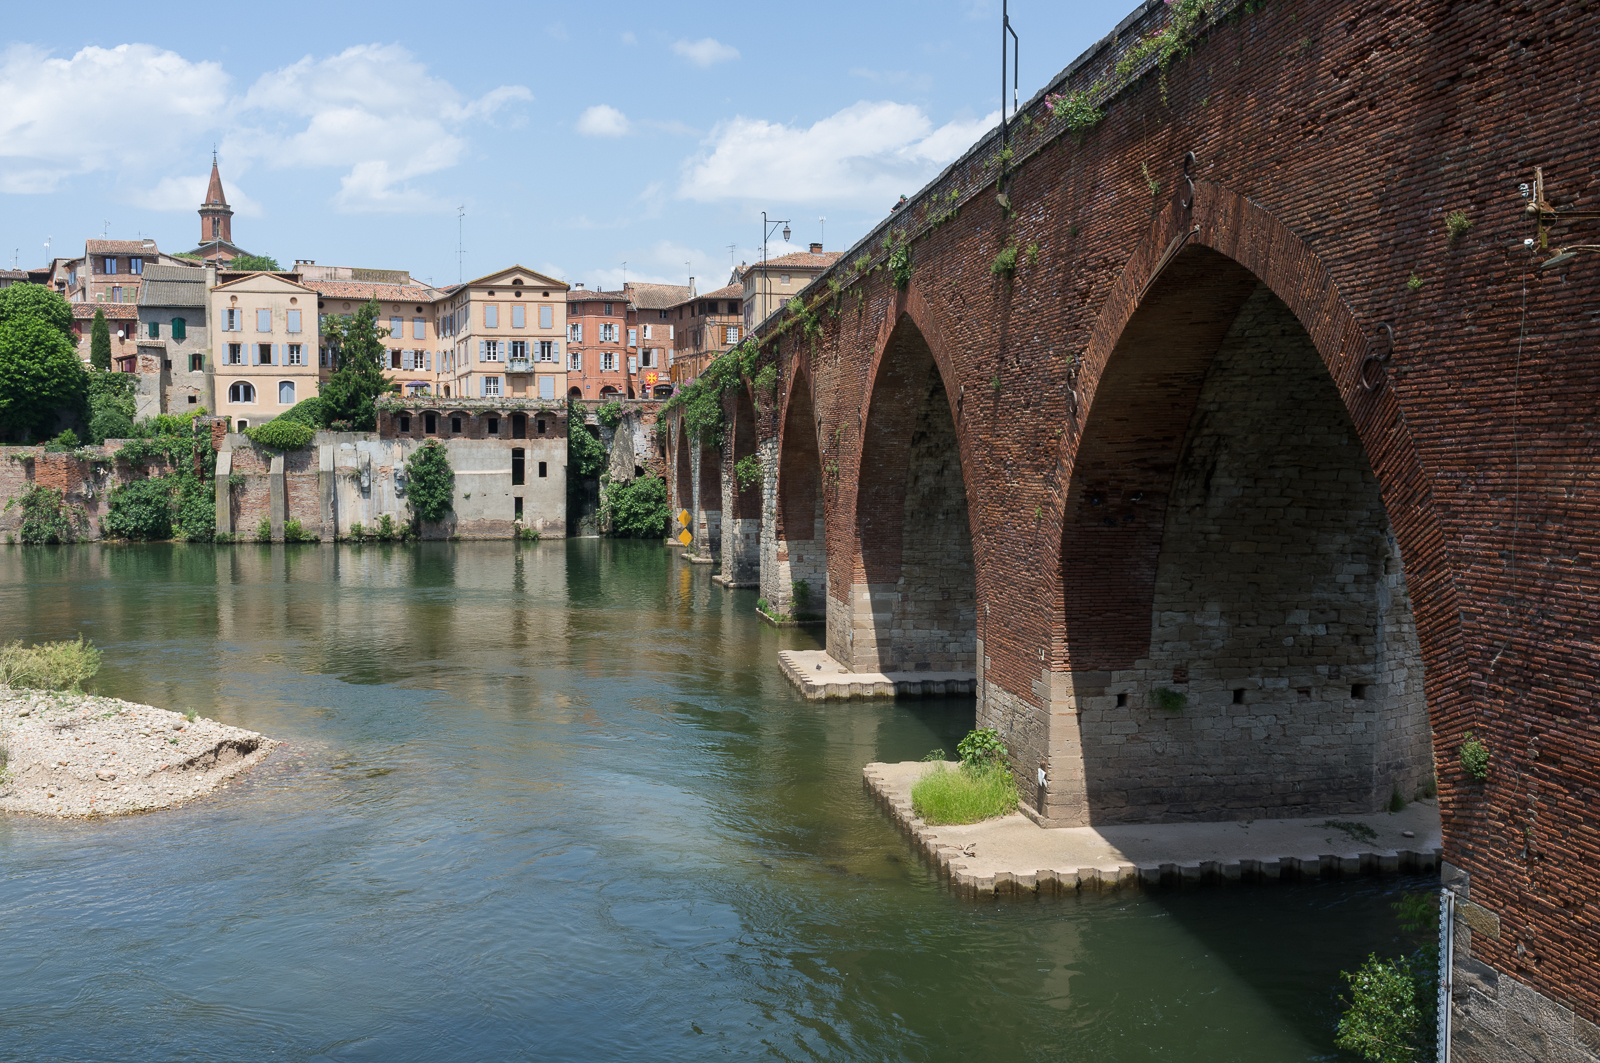 The Old Bridge (Pont-Vieux) over River Tarn in Albi - France